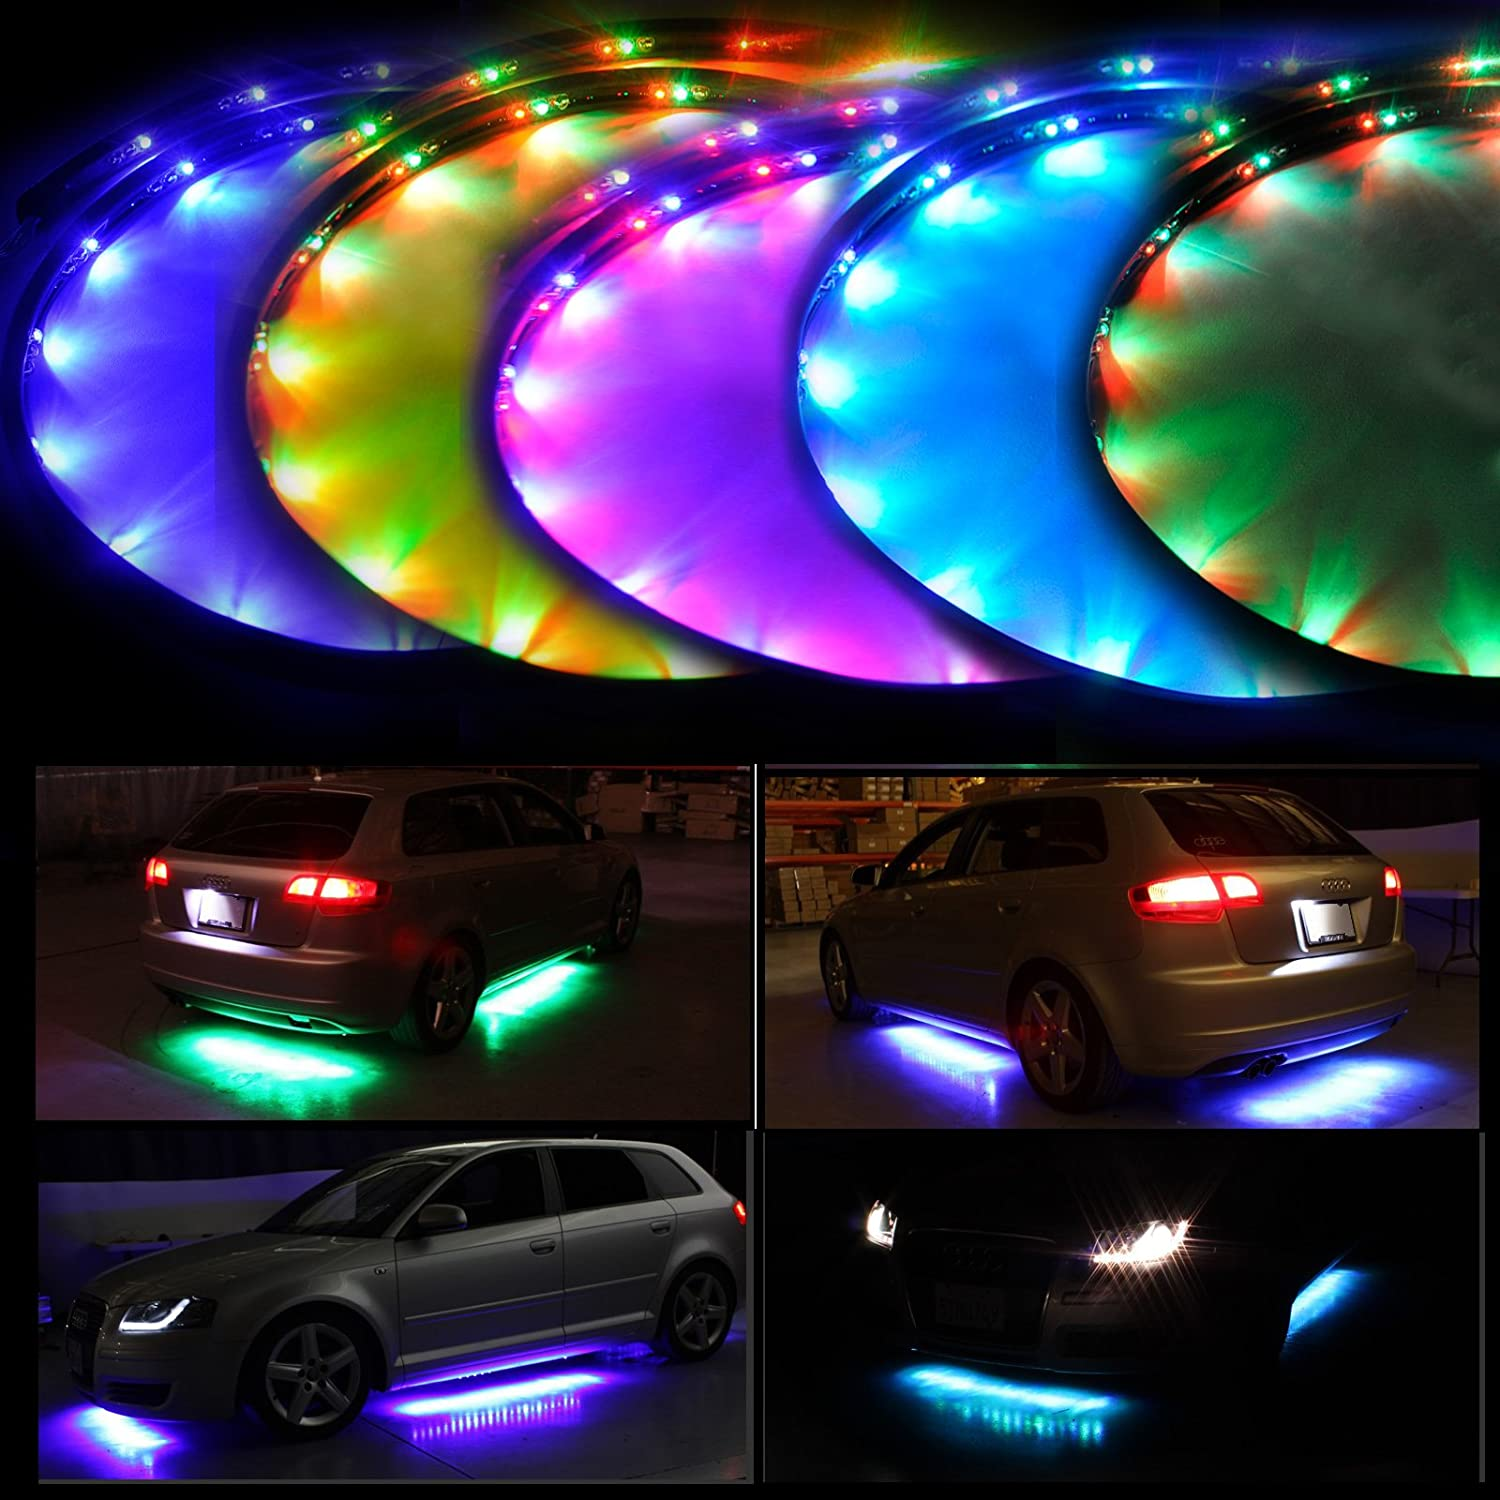 Lychee 7 Color LED Under Car Glow Underbody System Neon Lights Kit w/Sound Active Function and Wireless Remote Control (48' x 2 & 36' x 2)